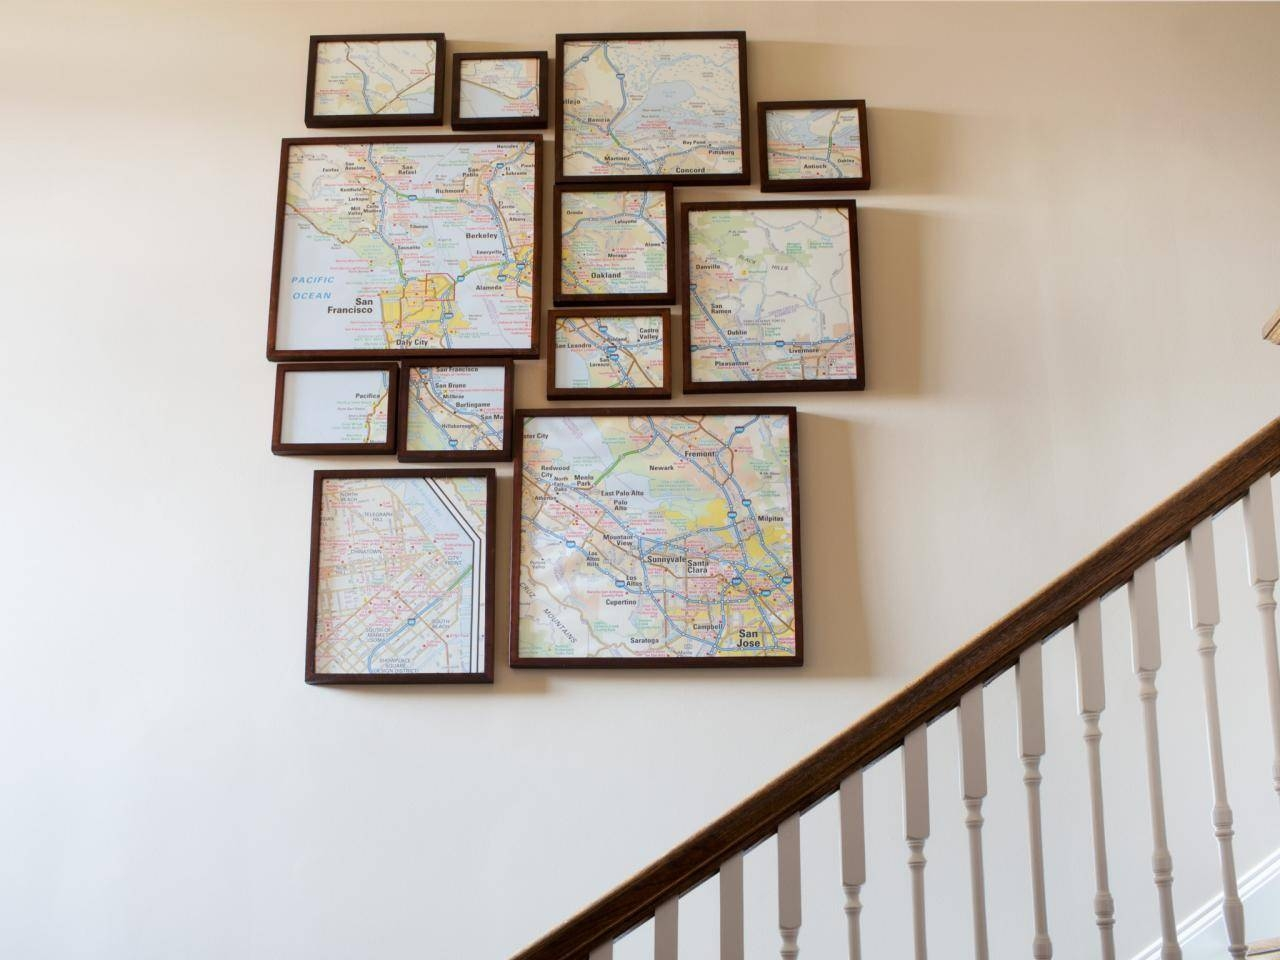 How To Create Fractured, Framed Map Art | Hgtv Within Newest Map Wall Artwork (View 9 of 20)